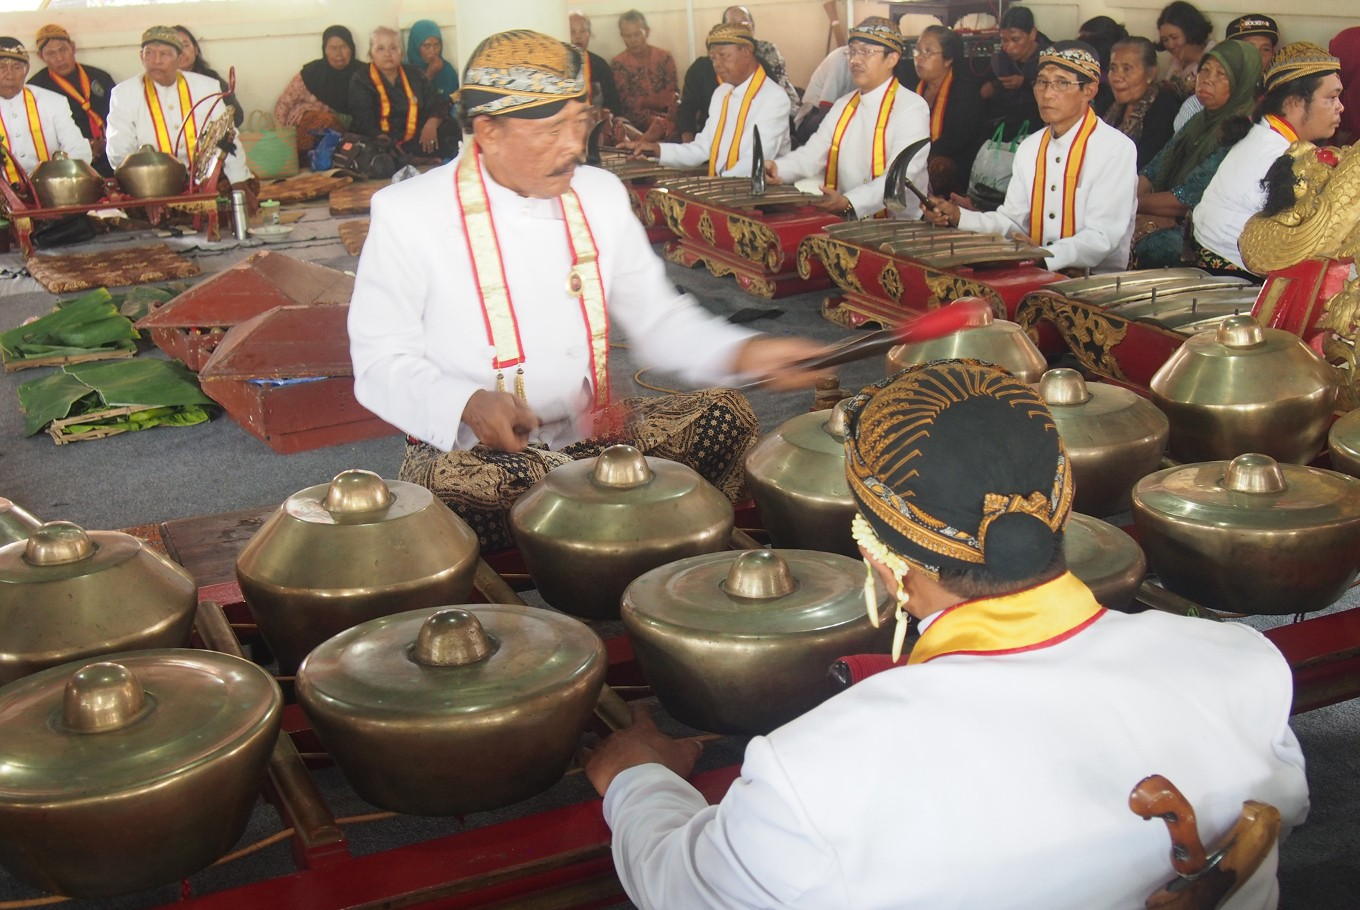 Royal servants play Sekaten gamelan as part of a ceremony which commemorates the birthday of the Prophet Muhammad at the Grand mosque, Surakarta in Central Java on Friday.